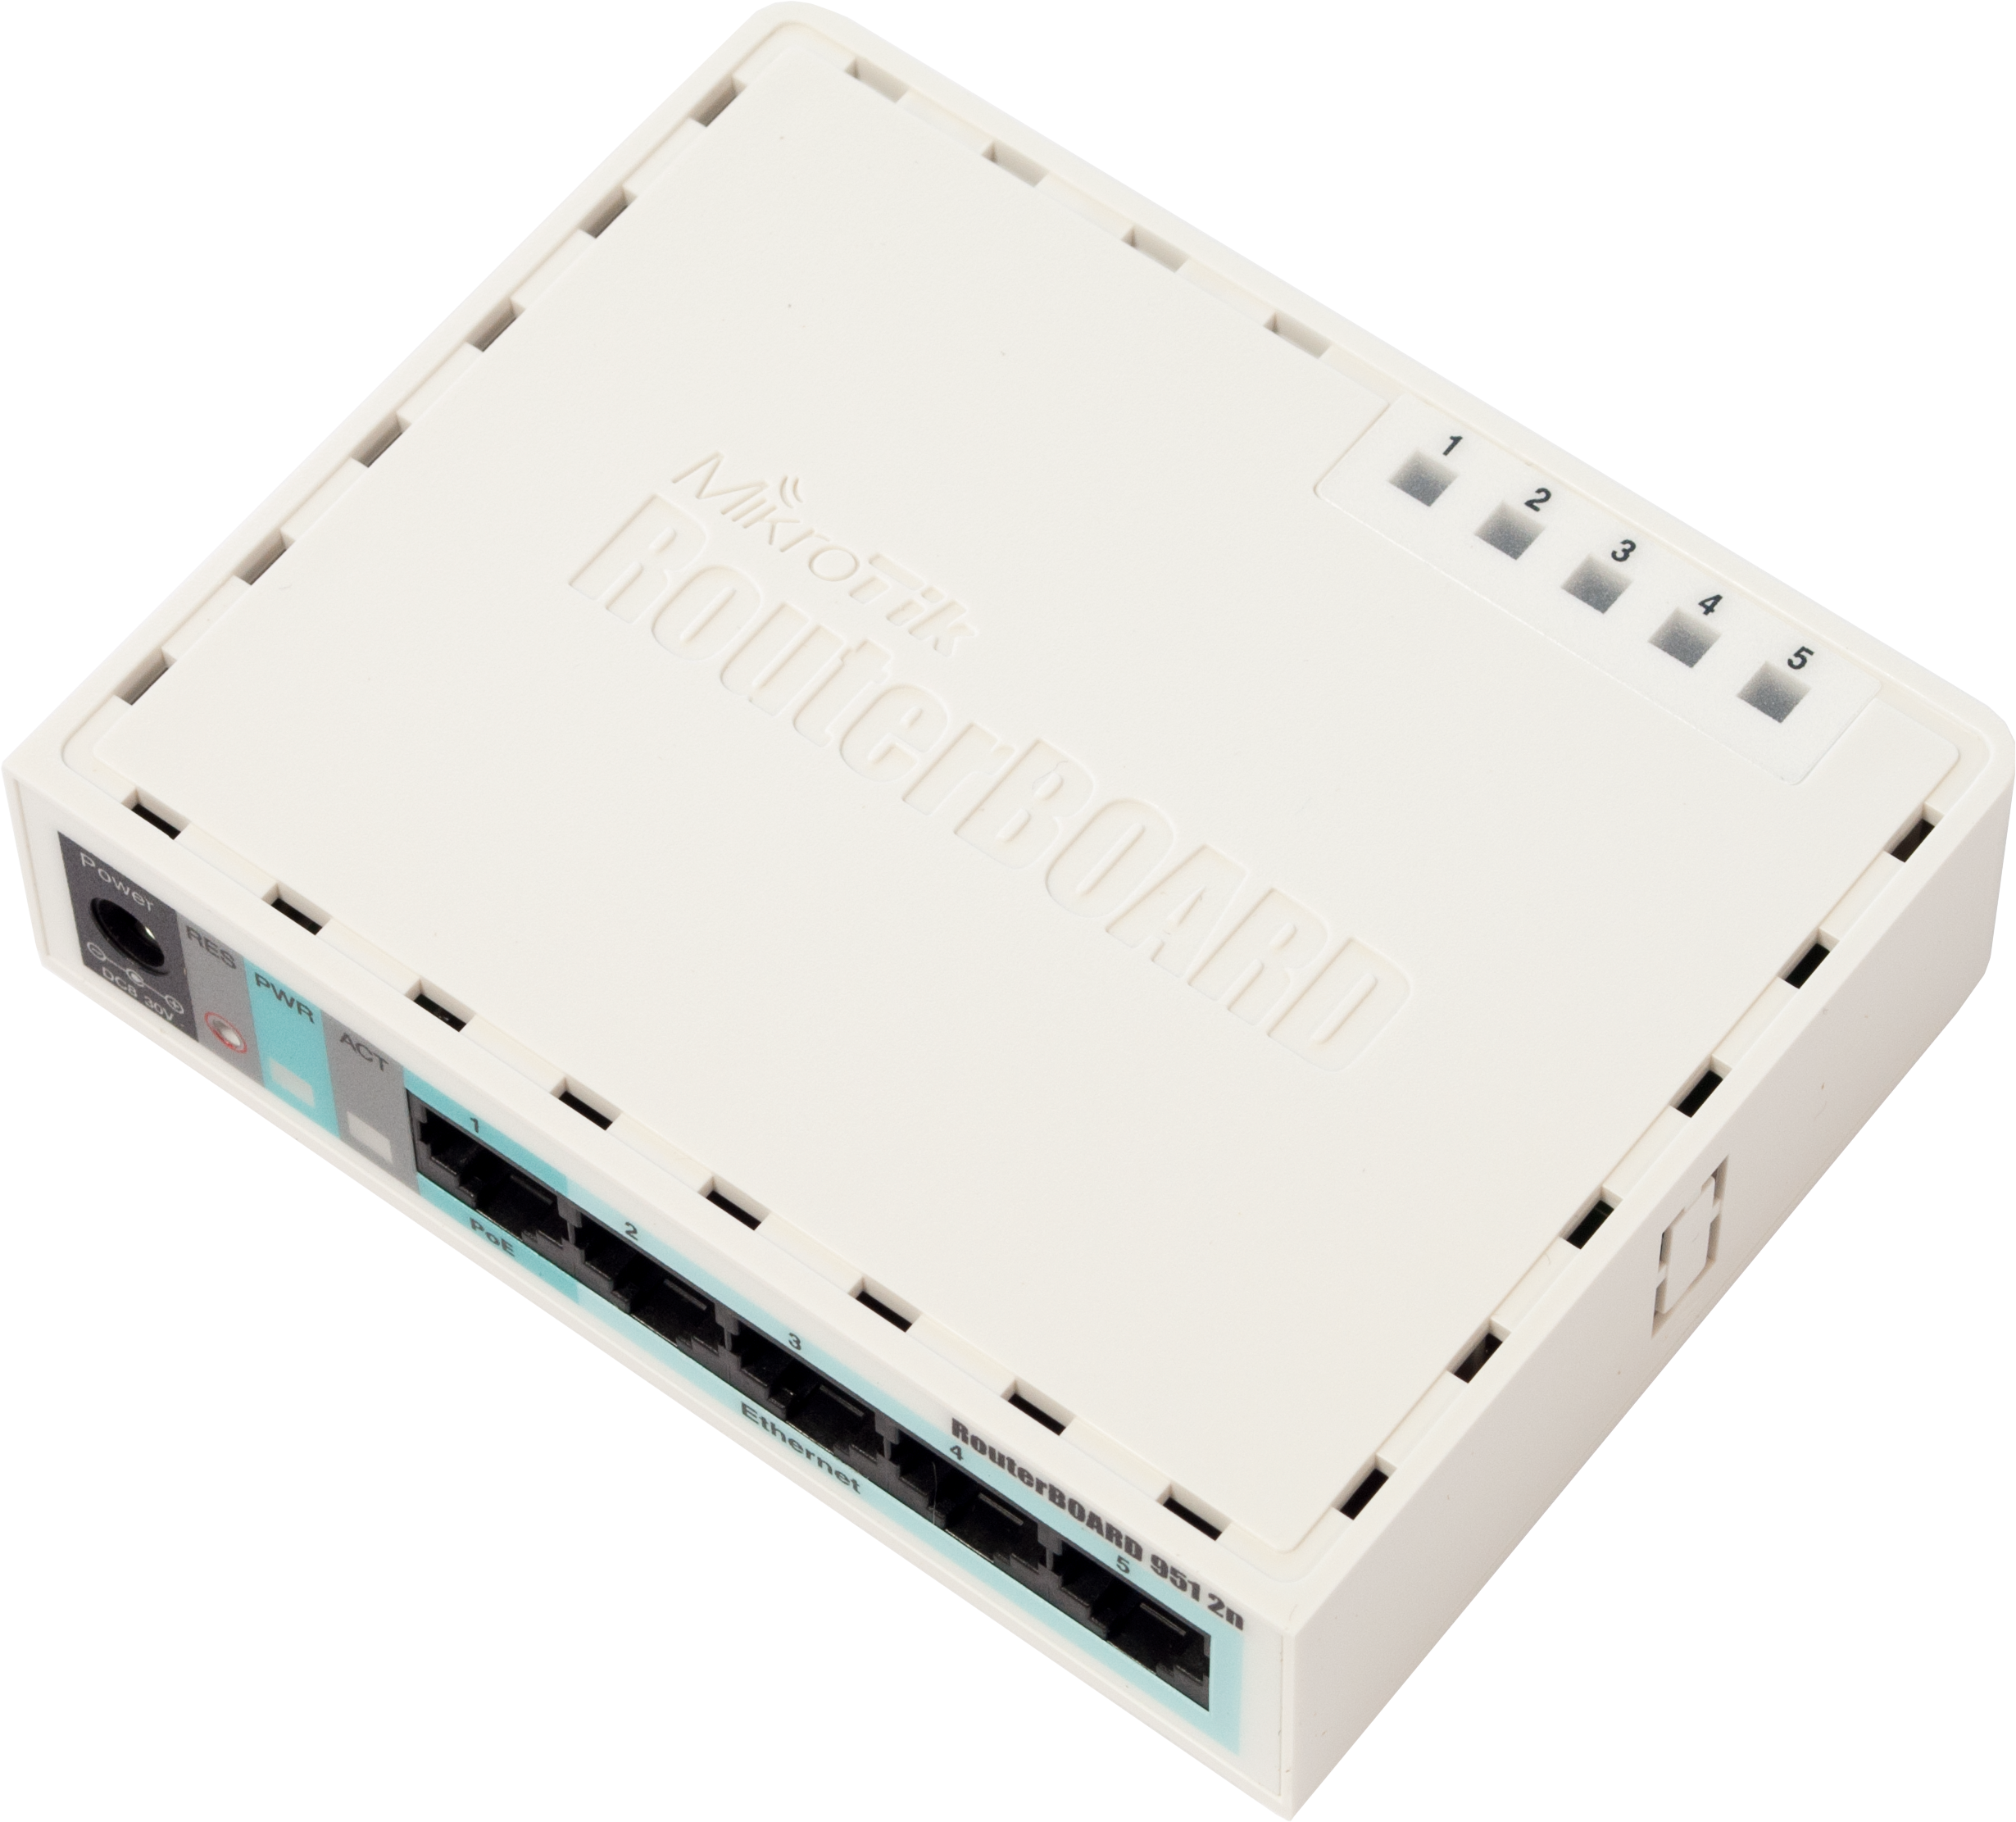 MikroTik Routers and Wireless - Products: RB951-2n